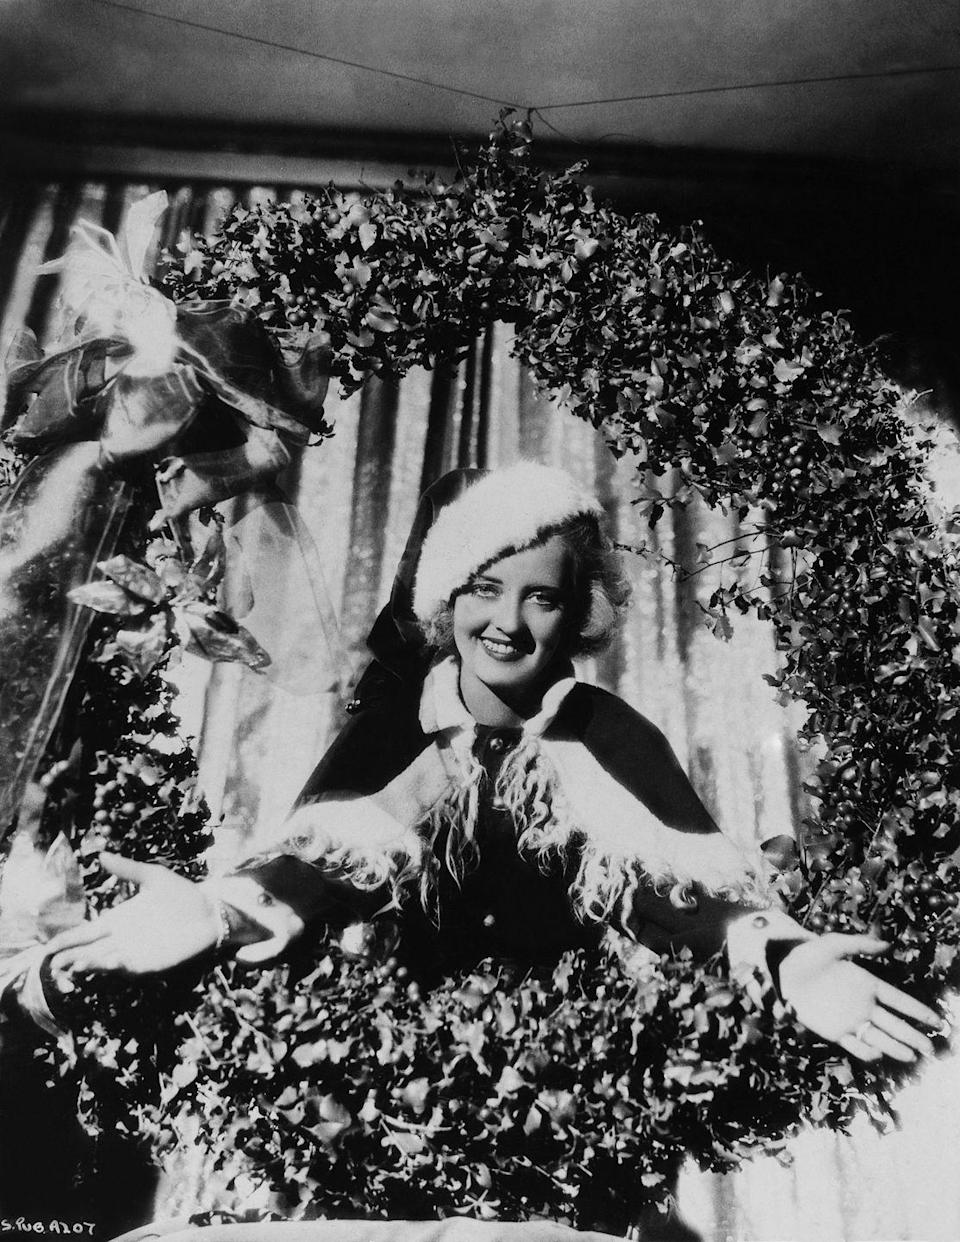 <p>Davis pokes out of a large yuletide wreath.</p>